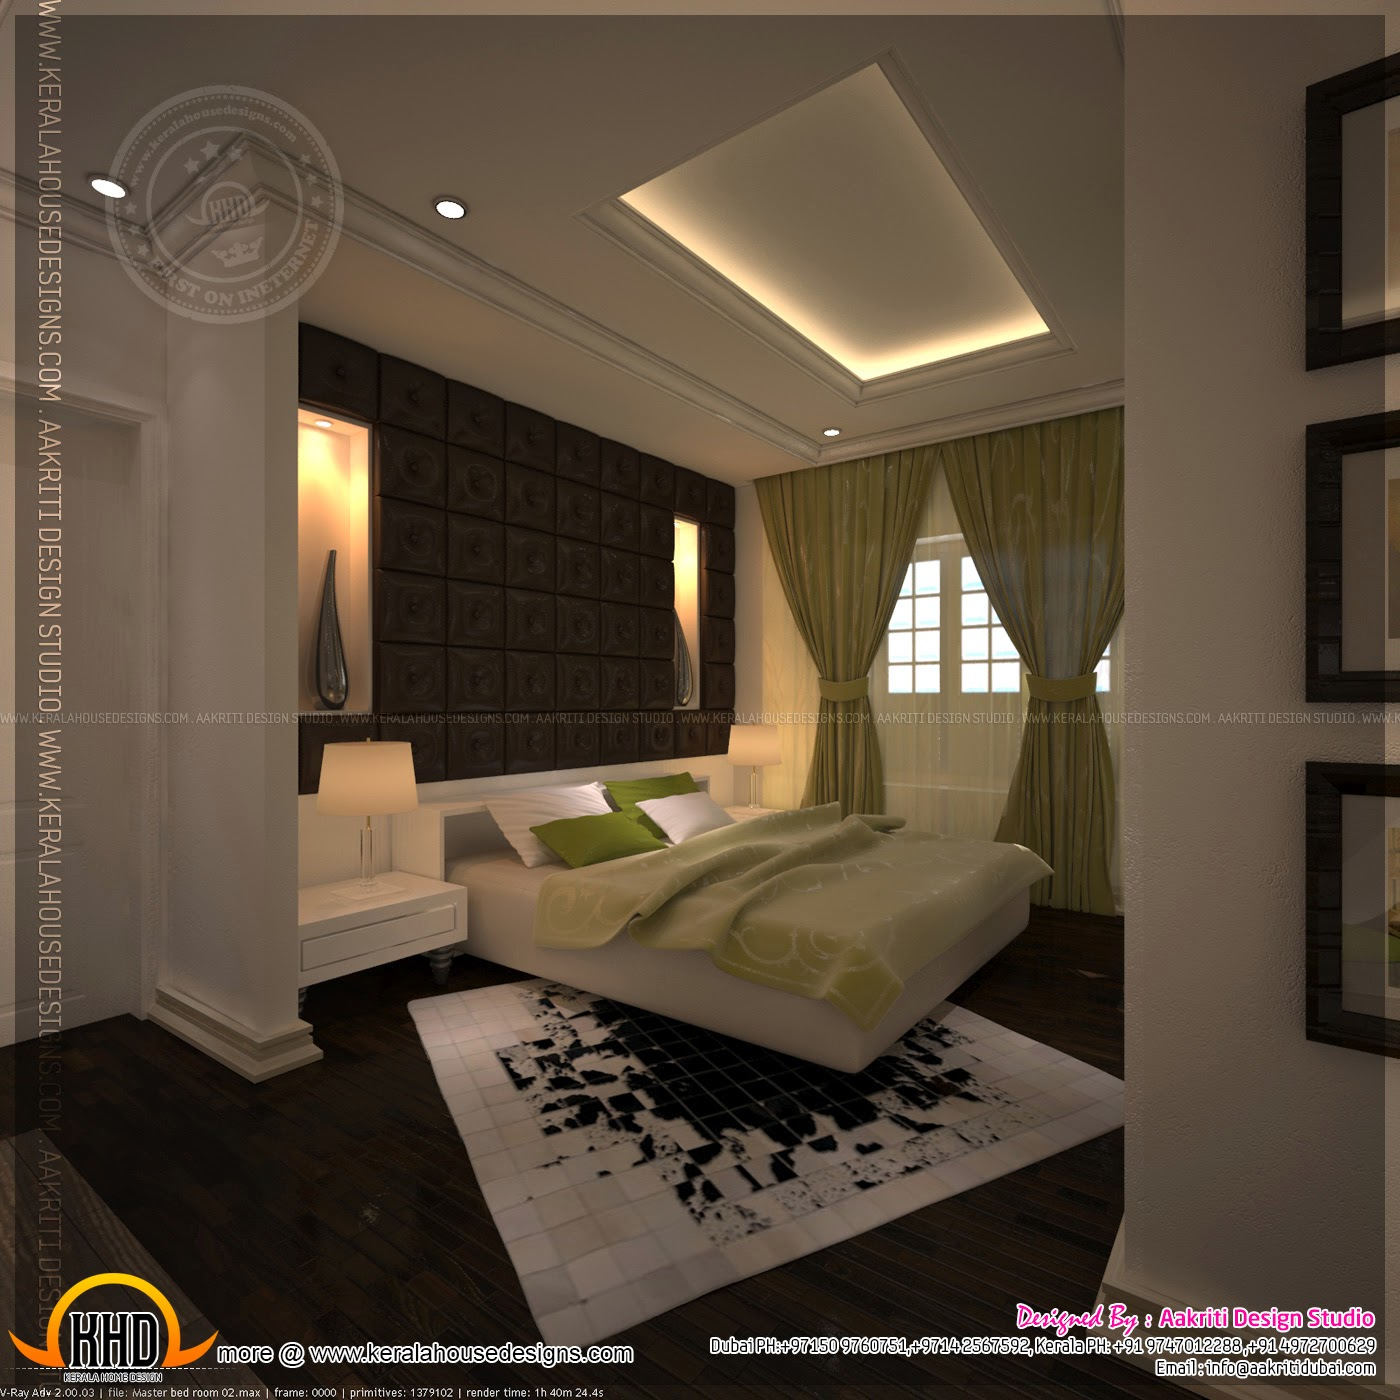 Master bedroom and bathroom interior design kerala home for Home design ideas hindi